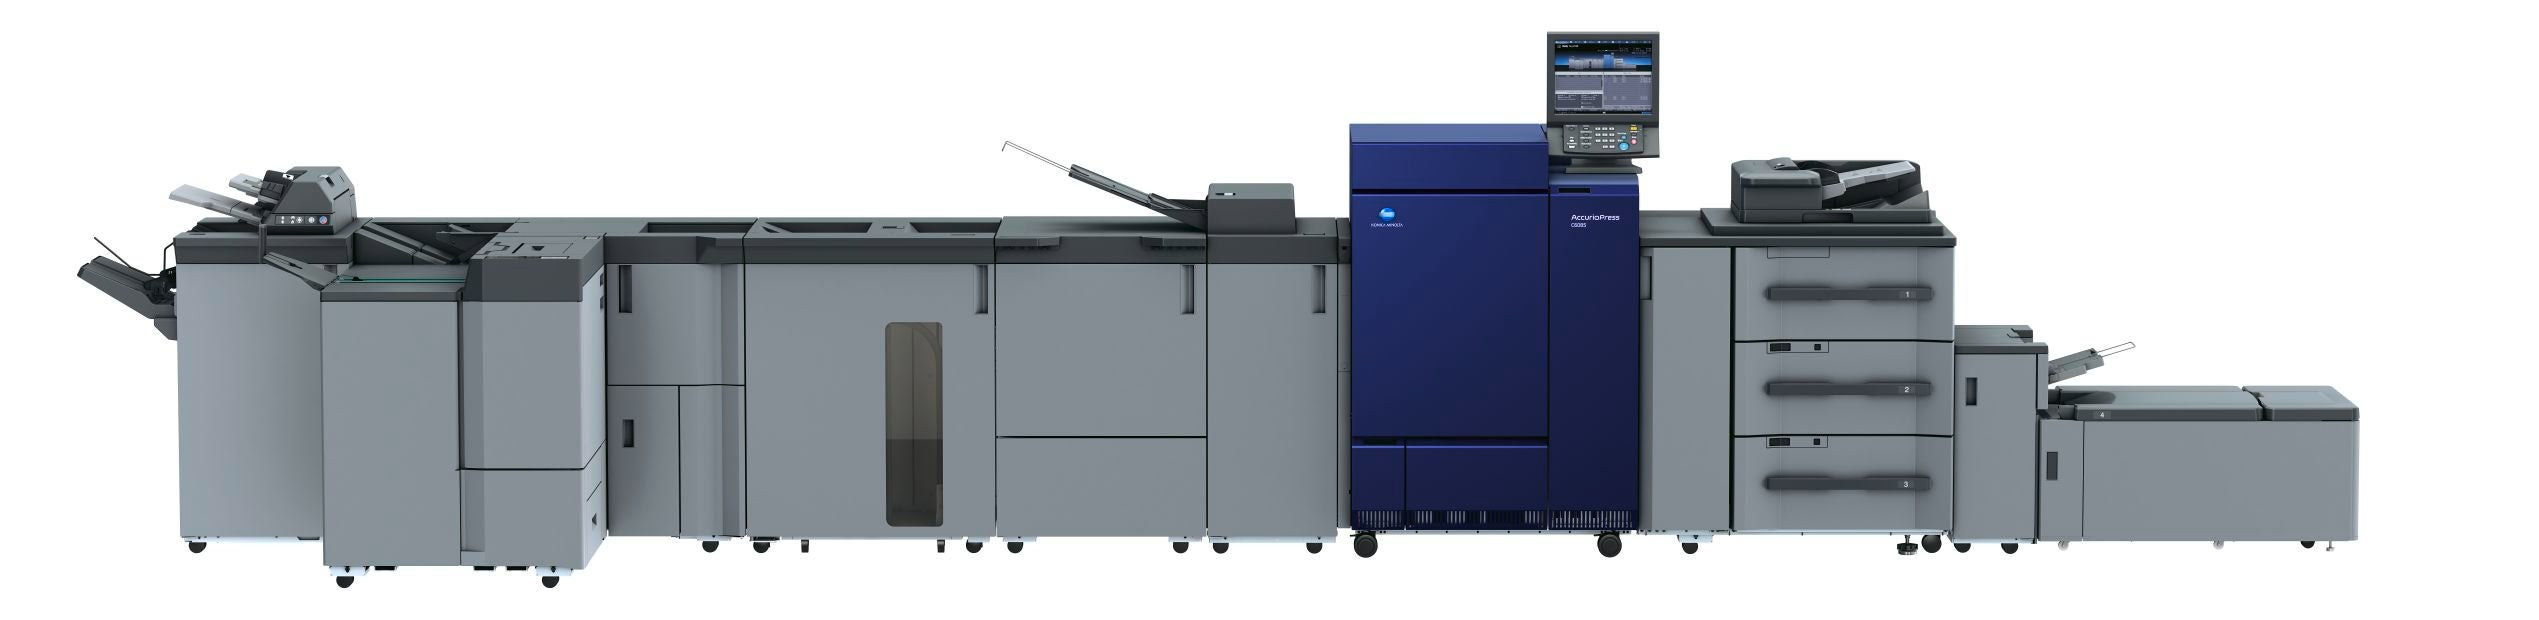 Profesionālais printeris Konica Minolta accurio press c6085